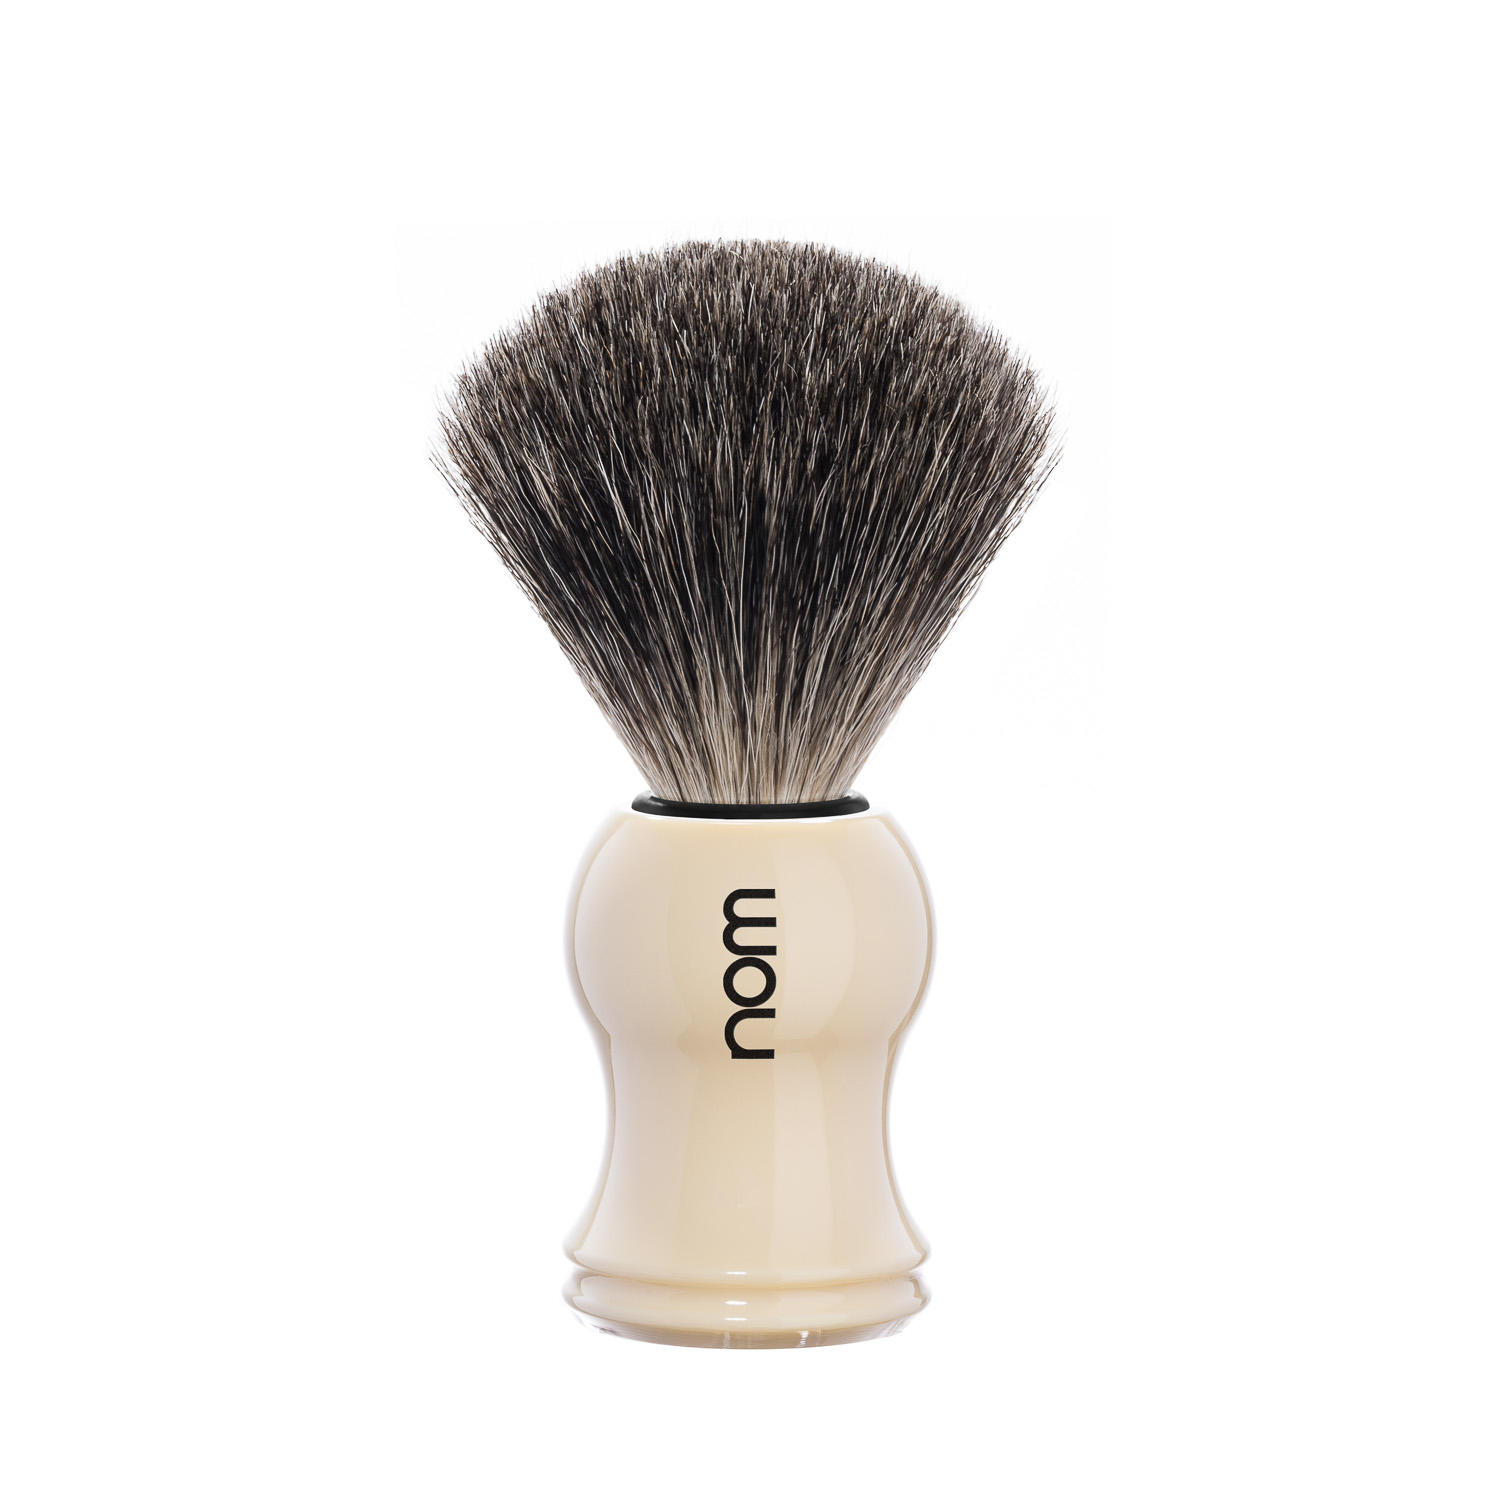 GUSTAV81CR nom GUSTAV, cream, pure badger shaving brush